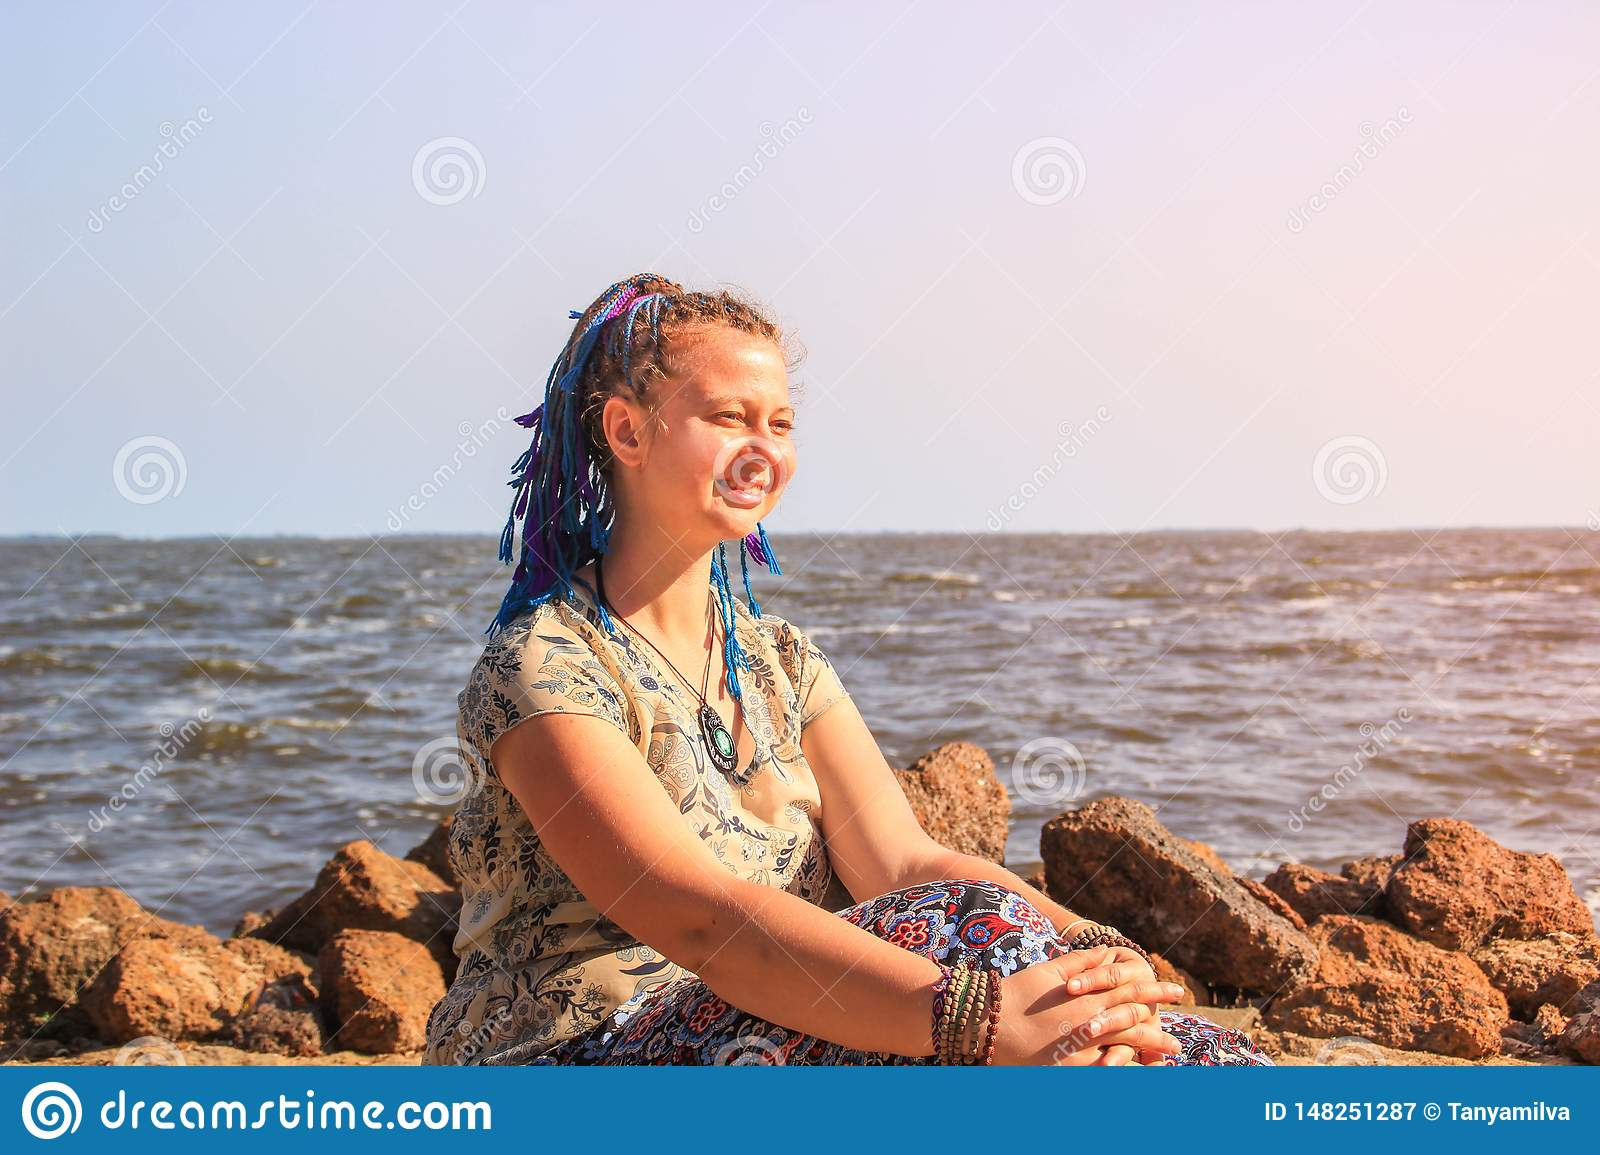 A plump young white girl traveler with blue pigtail hair sits barefoot on the sand against the backdrop of Lake Victoria